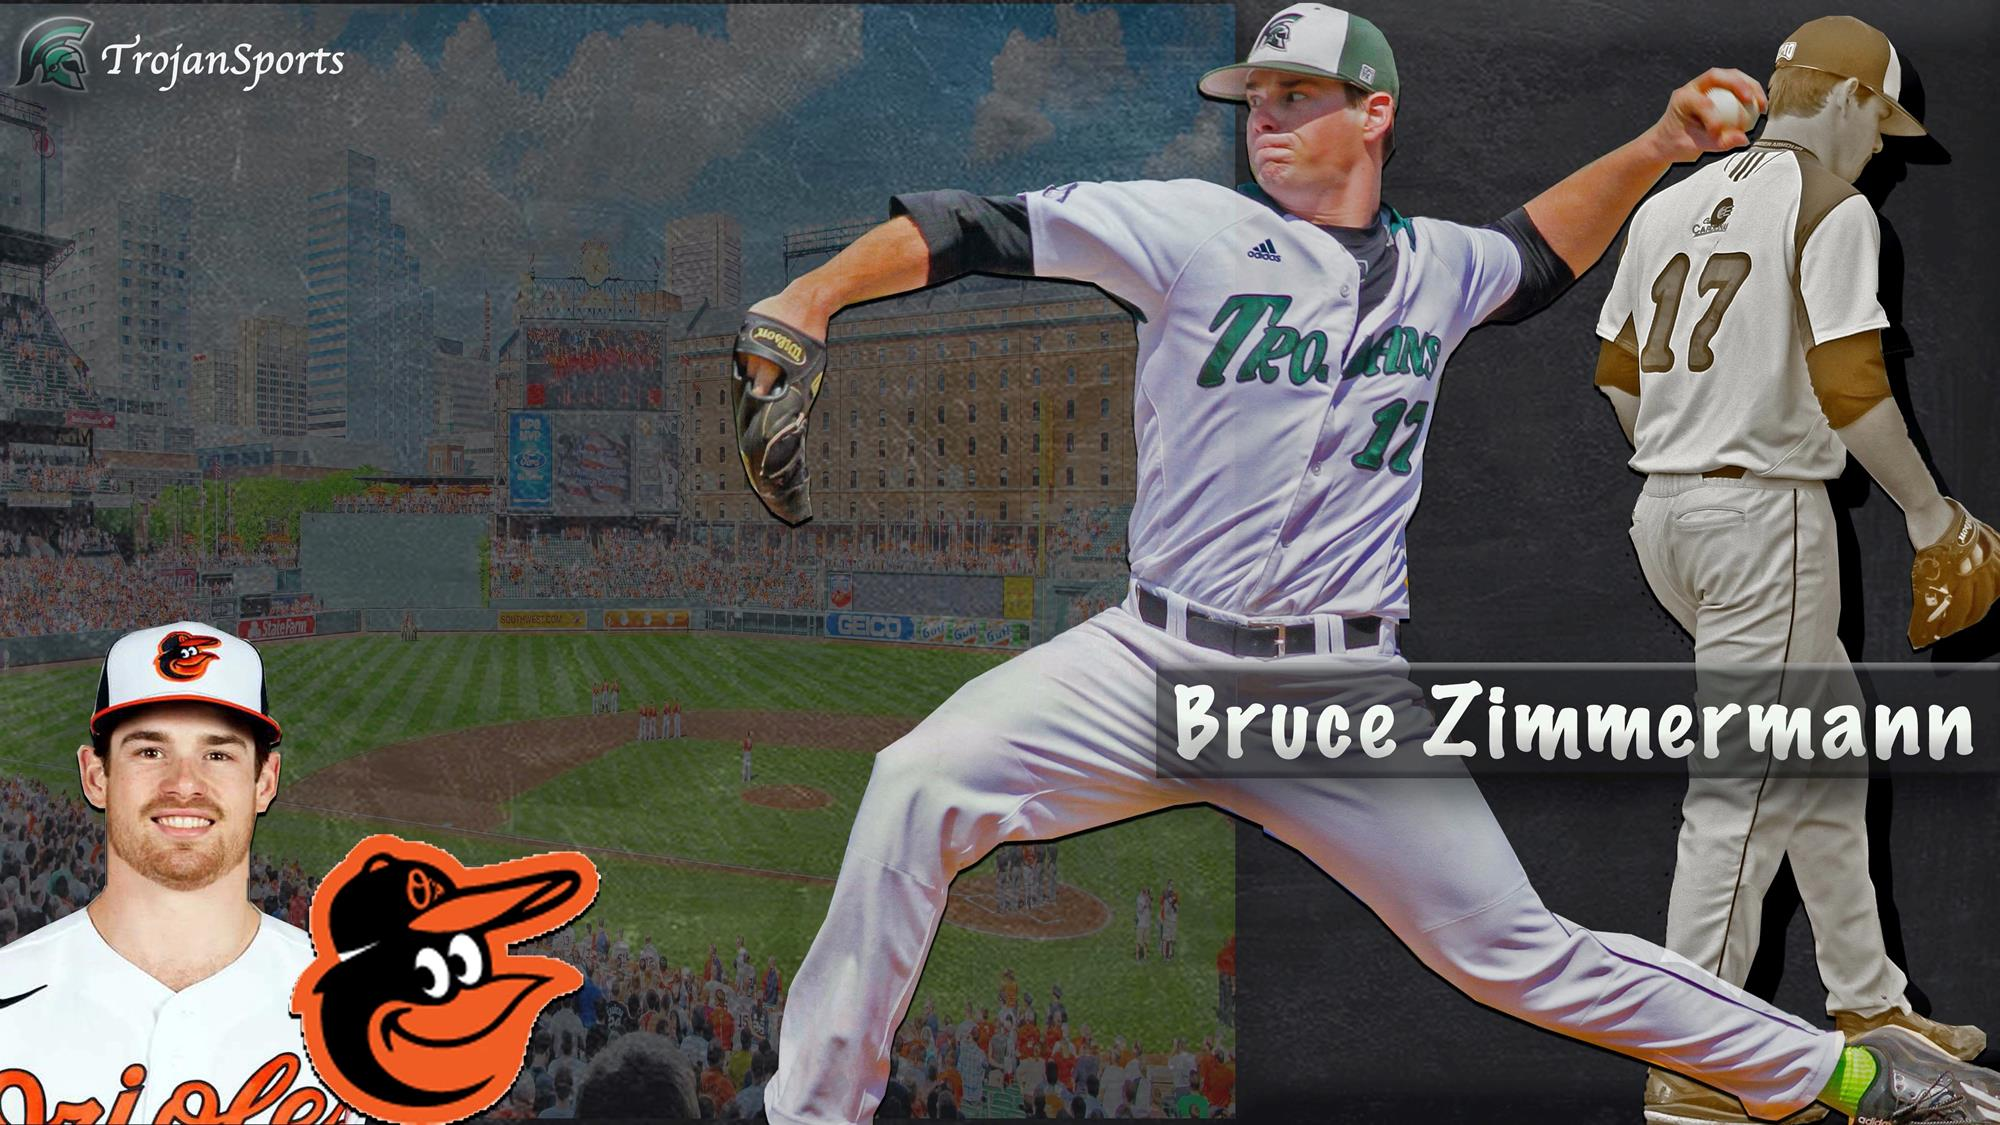 Bruce Zimmermann To Make His Major League Debut With Orioles Tonight University Of Mount Olive